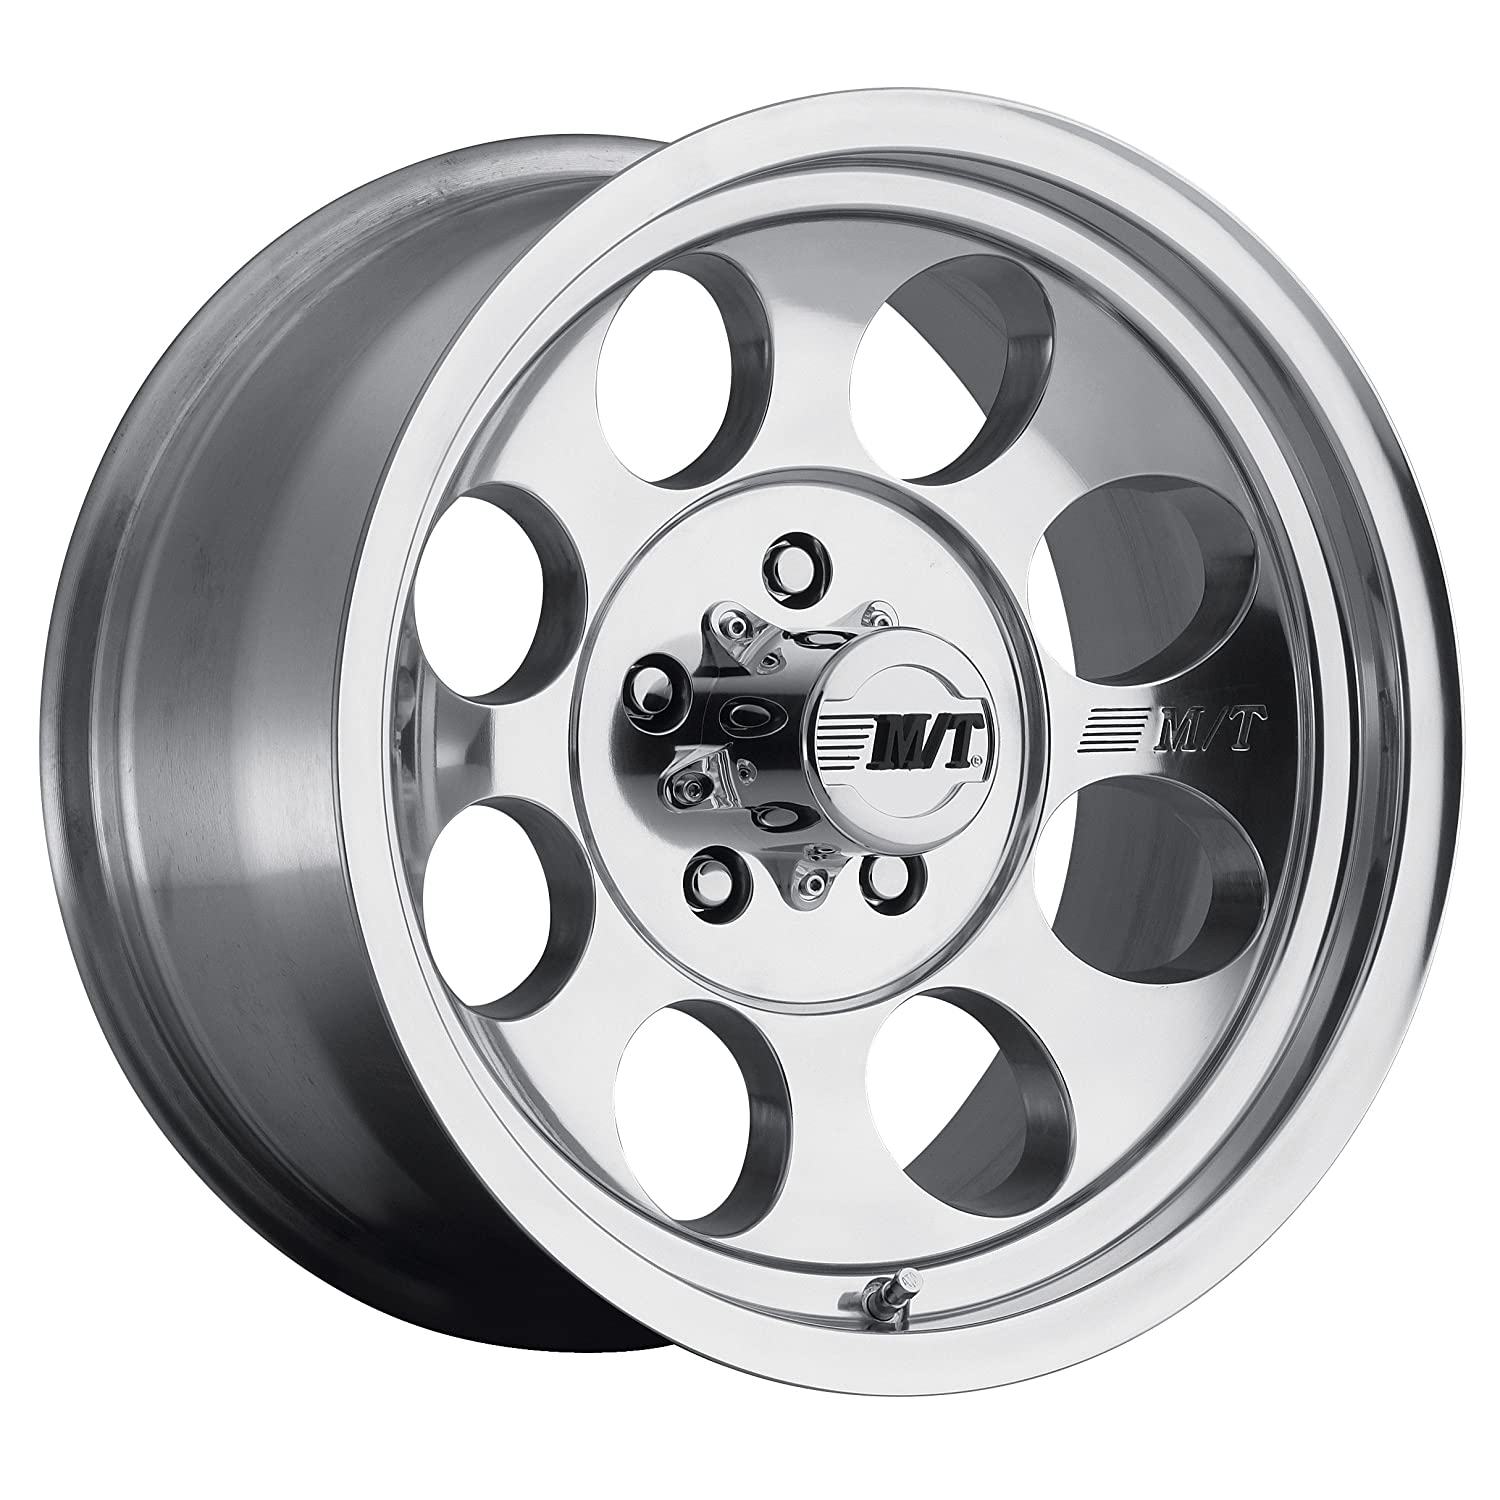 0 millimeters offset 17x9//8x6.5 Mickey Thompson Classic III Wheel with Polished Finish